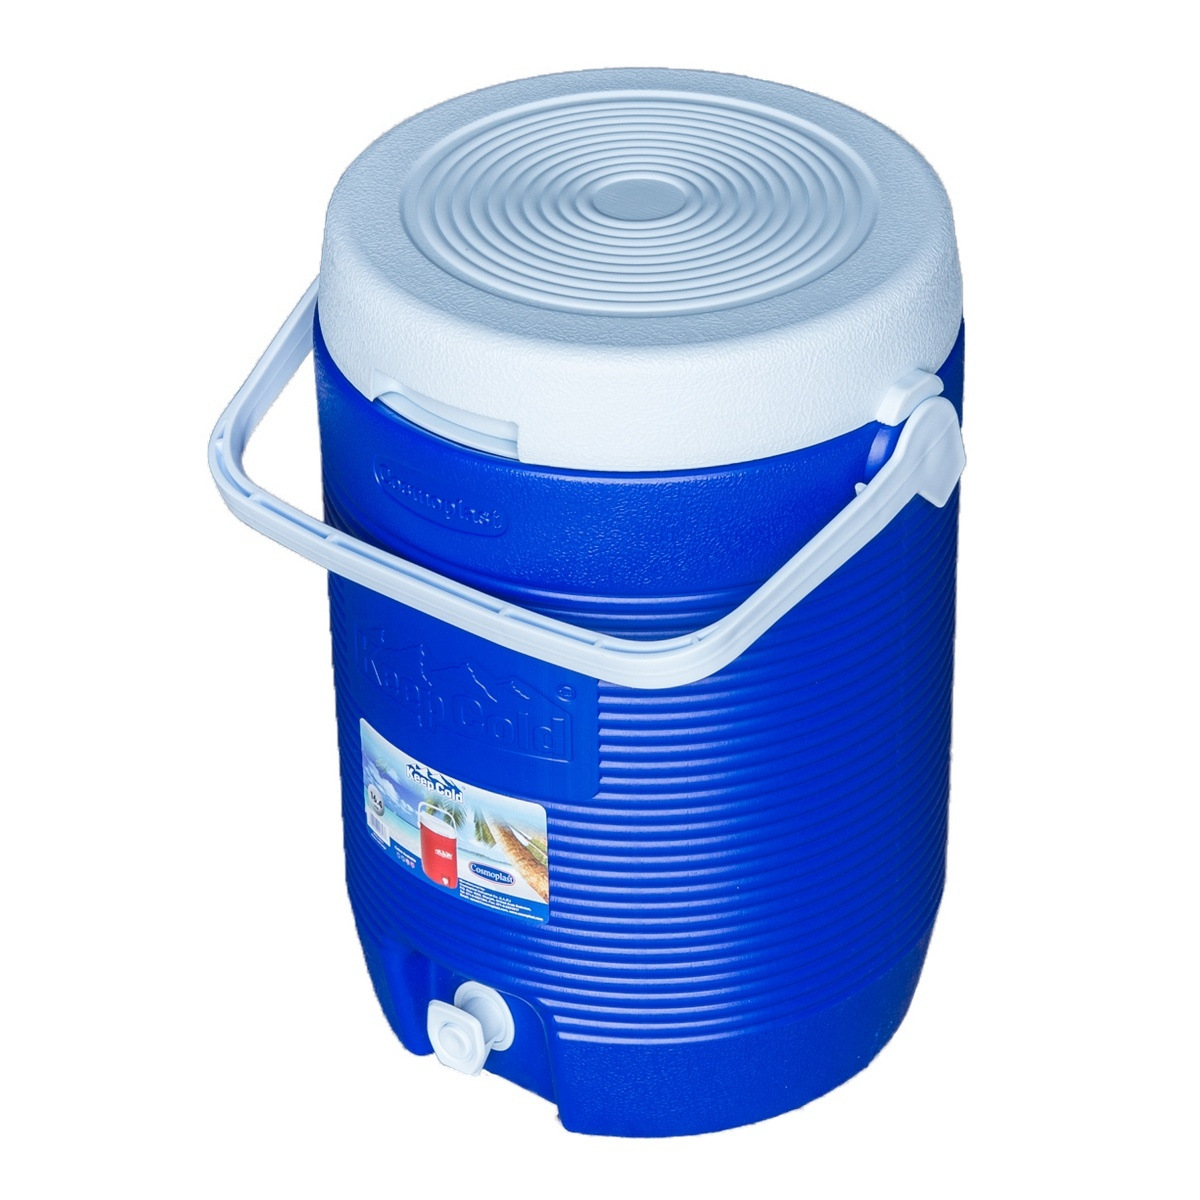 Cosmoplast Chladicí box Keep Cold soudek 16 l